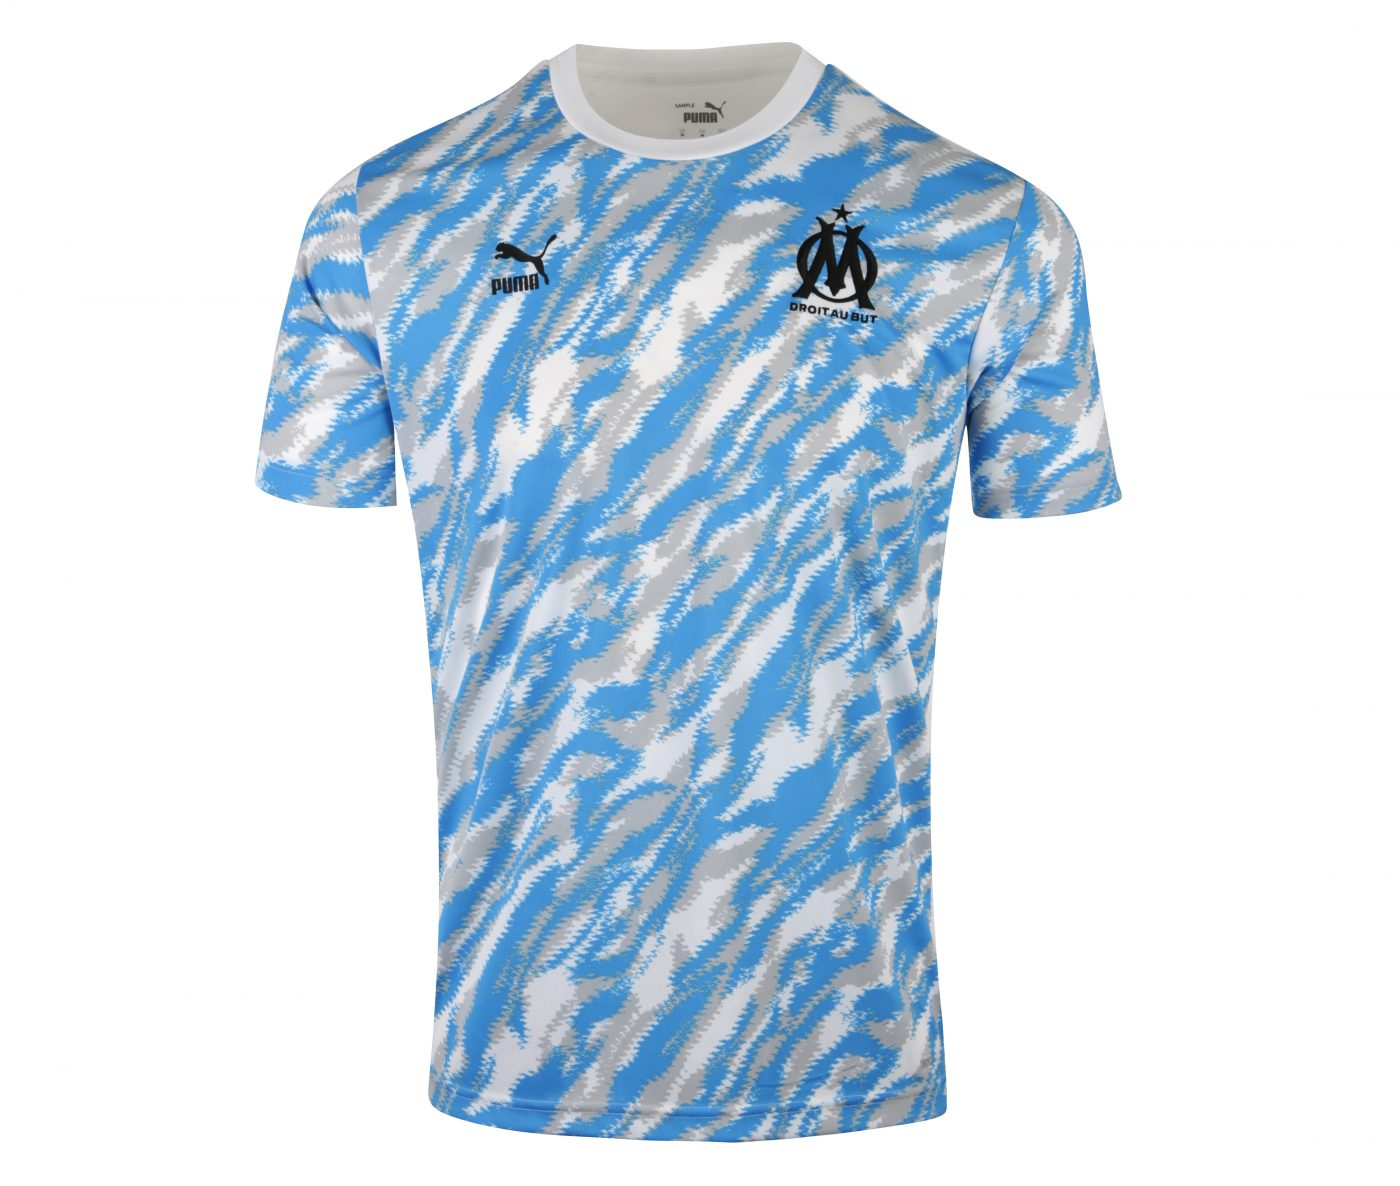 collection-iconic-om-puma-sportstyle-packshot-3